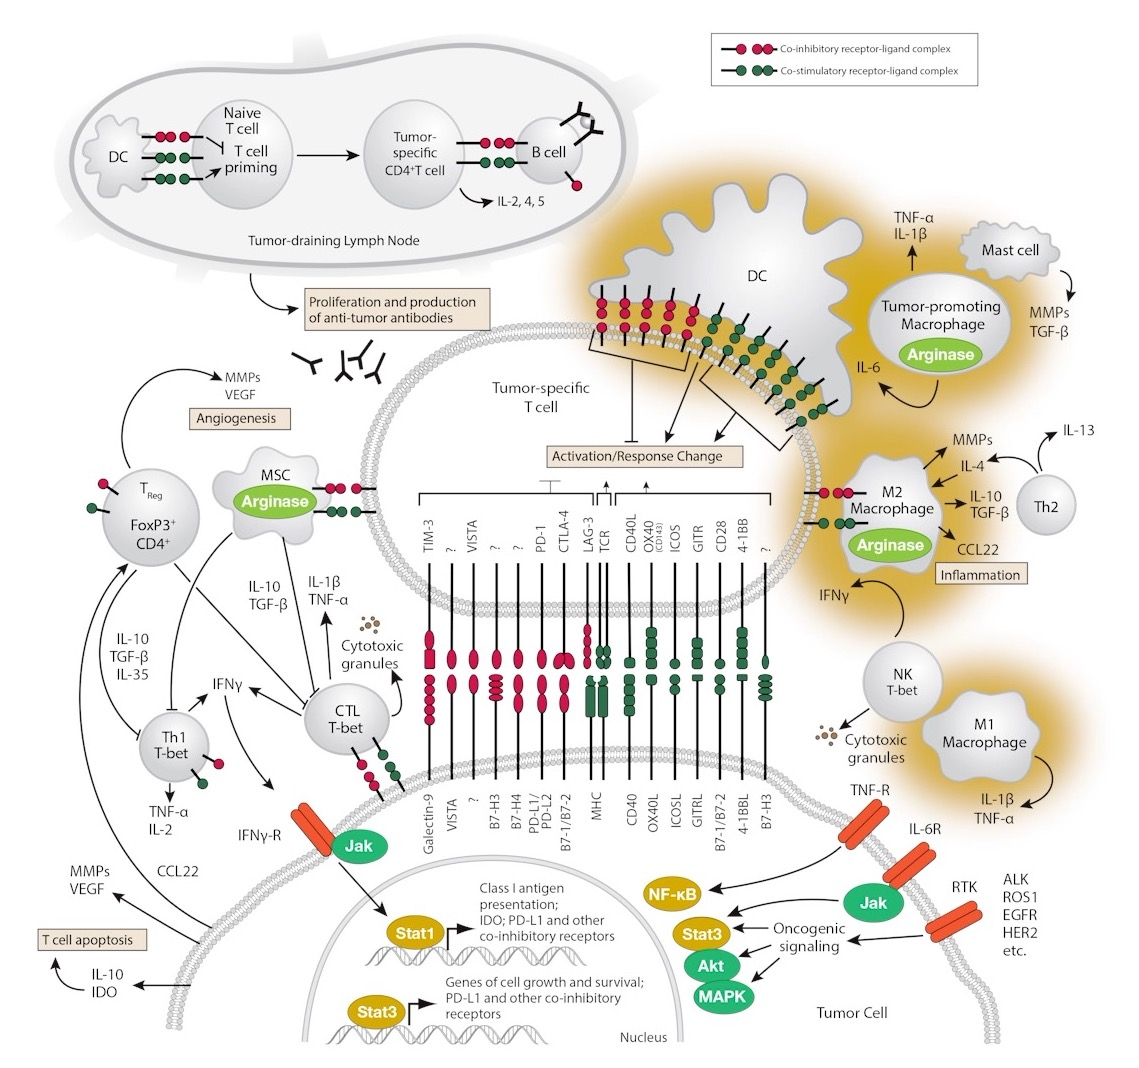 Immune Checkpoint Signaling Pathway